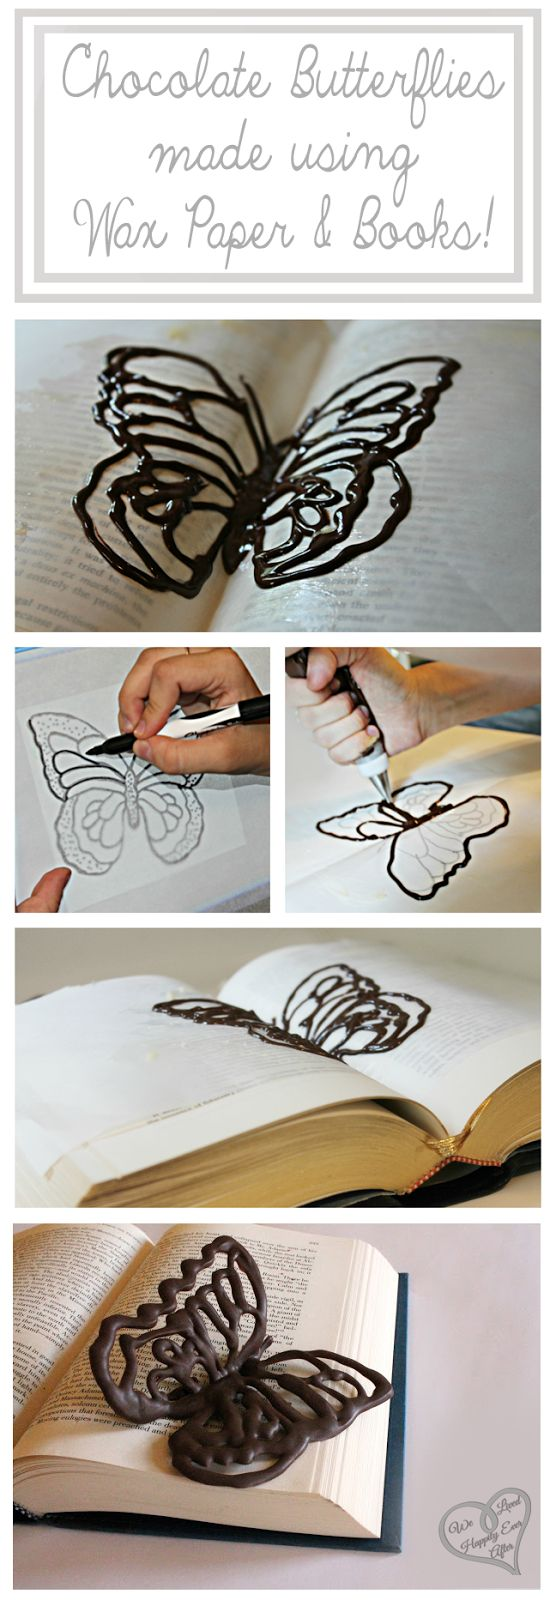 Chocolate Butterflies Using Wax Paper and Books! The book gives the wings a realistic pose. Why didn't I think of this?